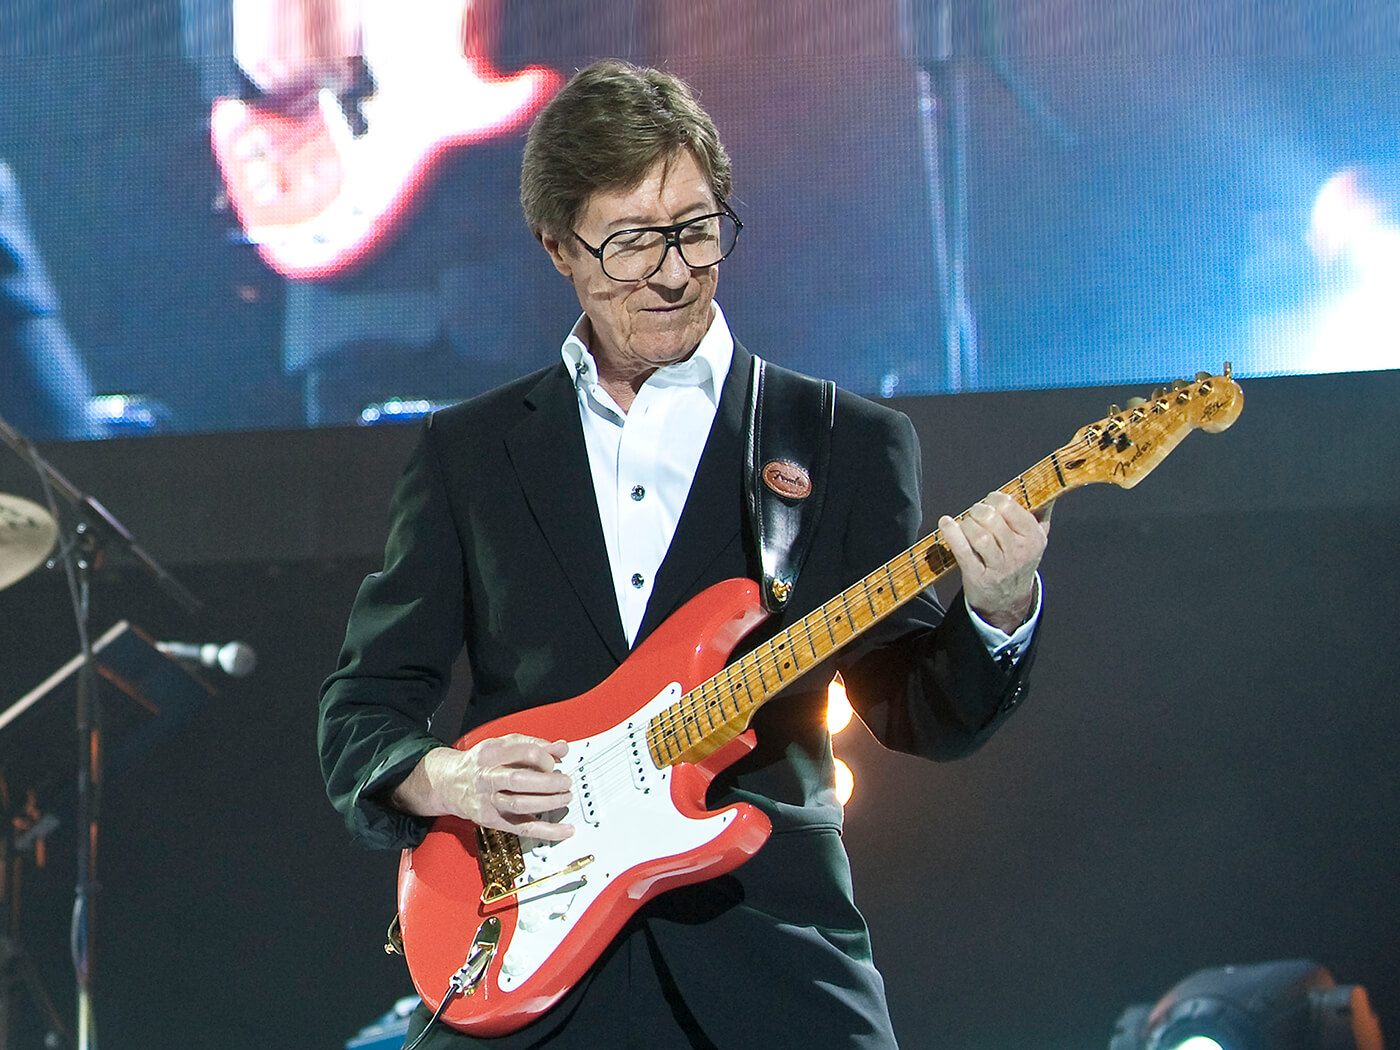 Send us your questions for Hank Marvin